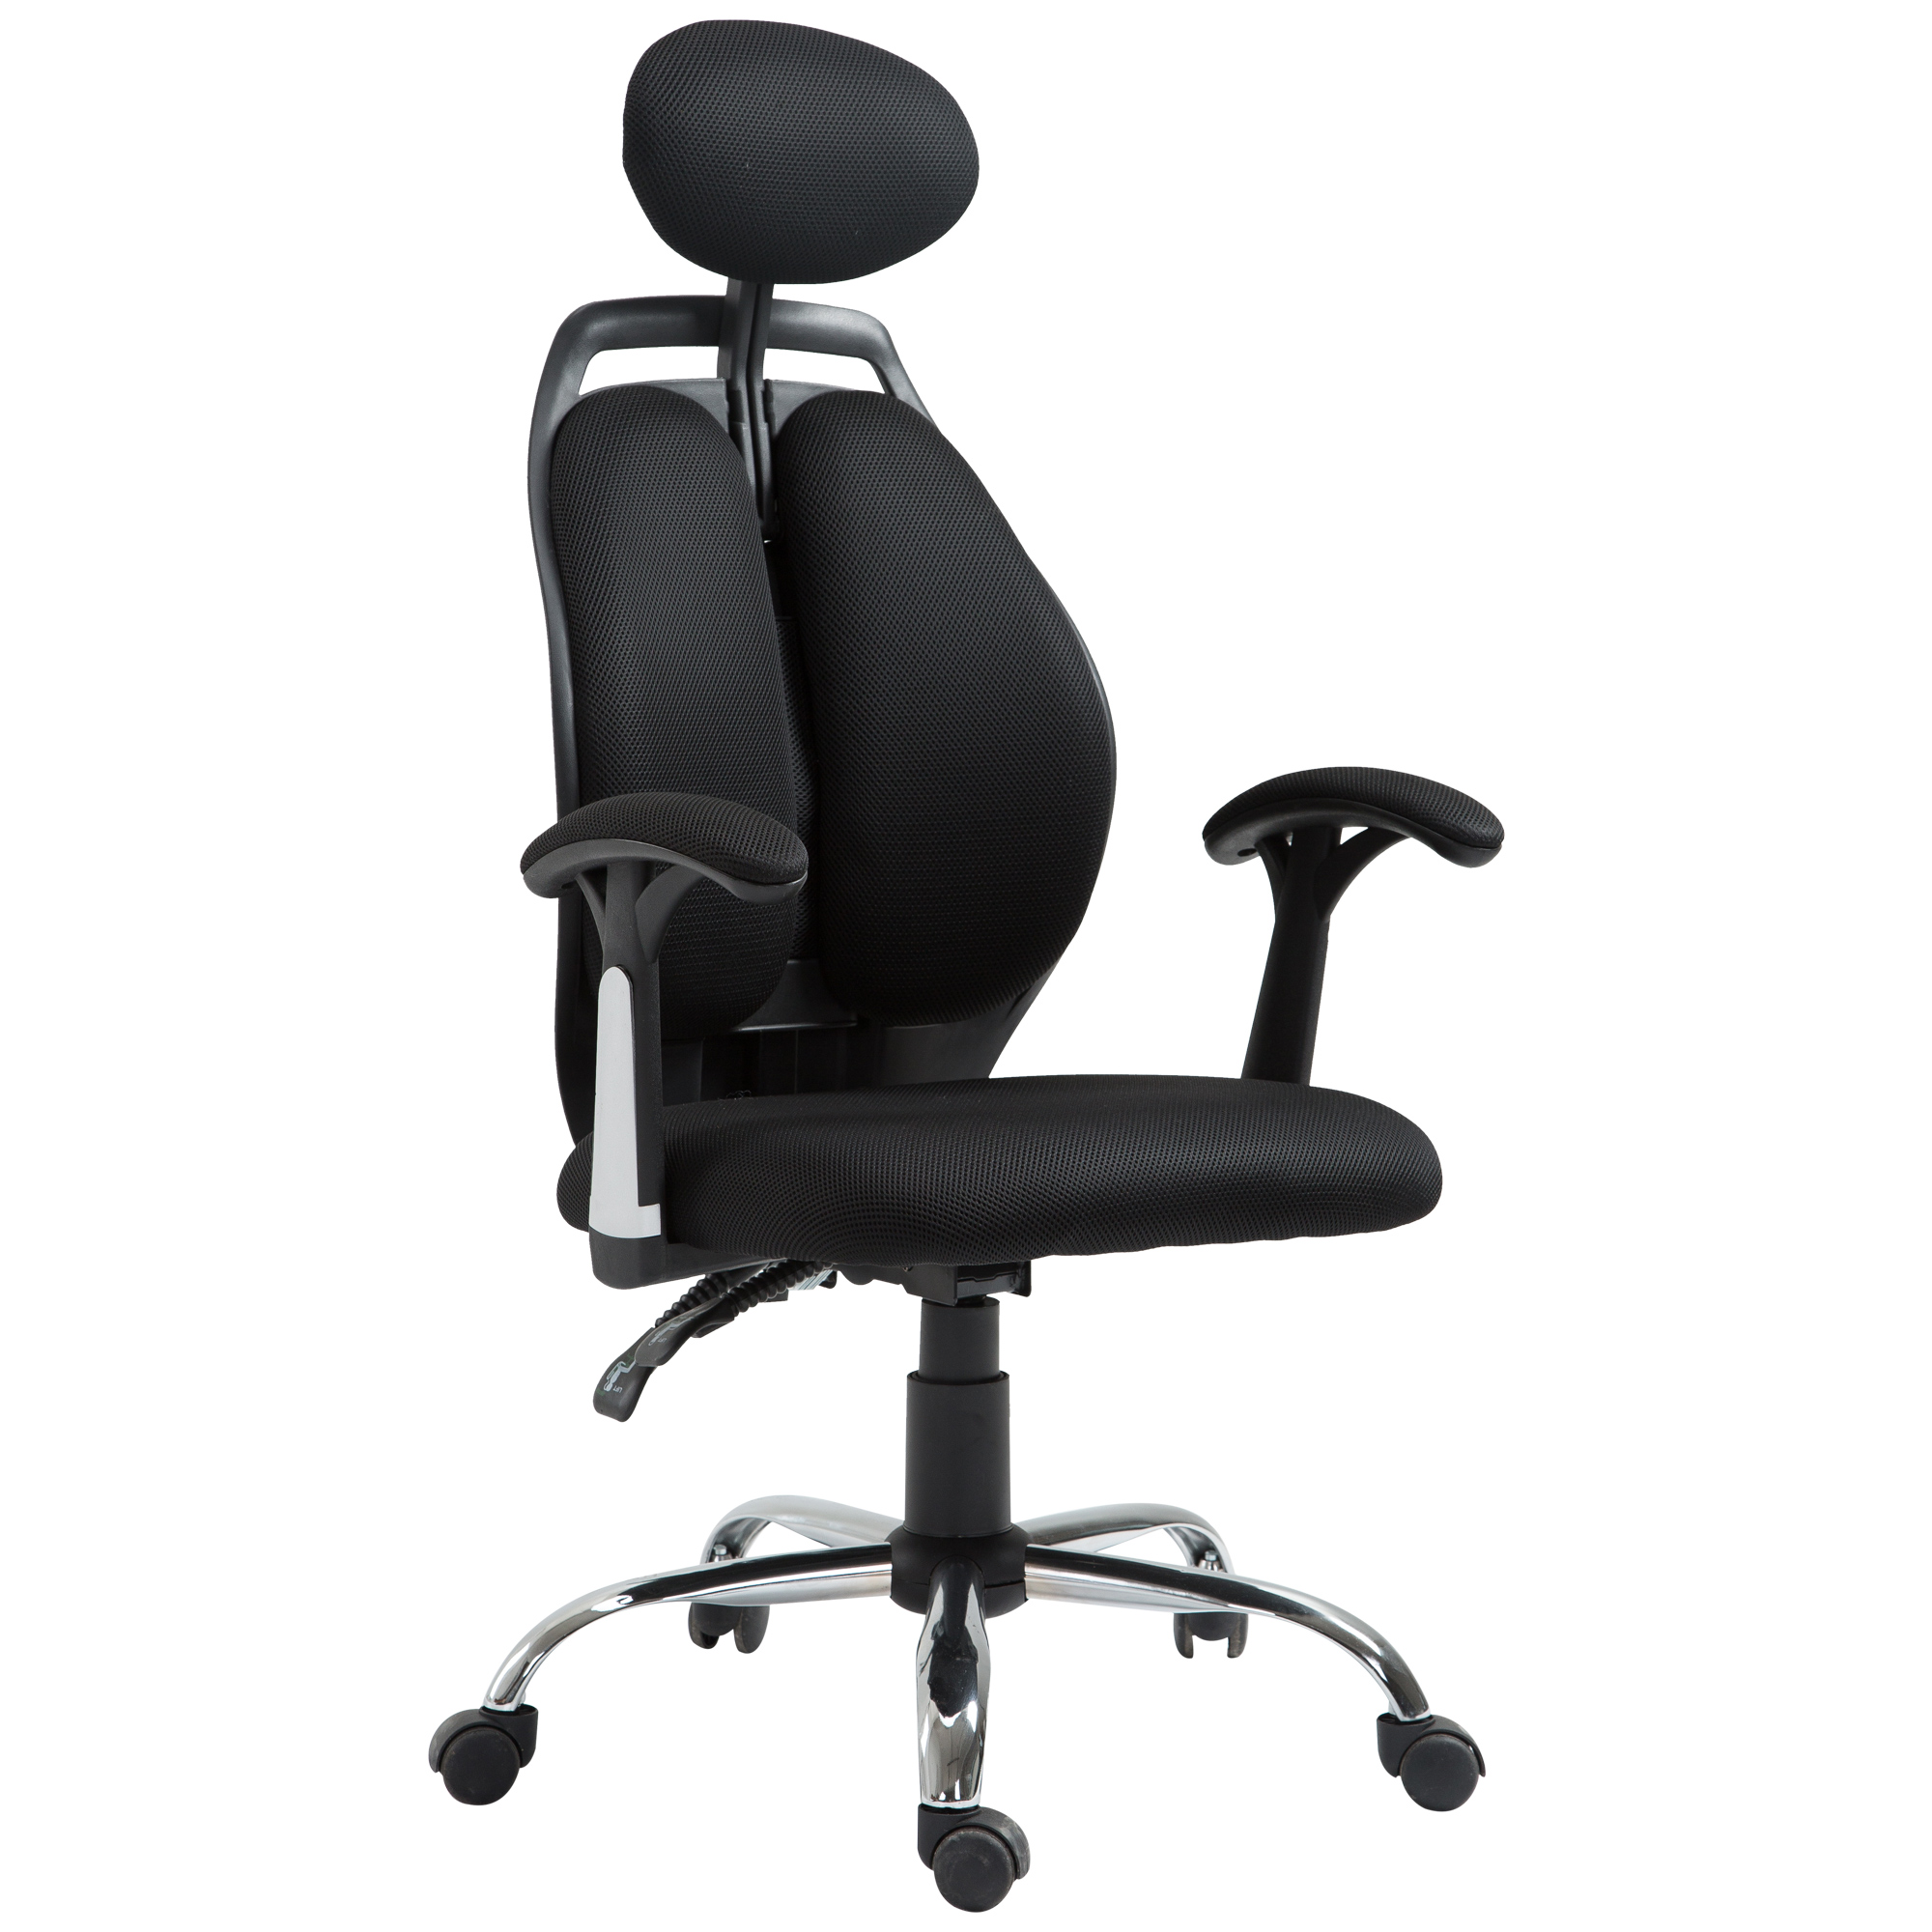 Image of CAD $139.99 Vinsetto High Back Ergonomic Mesh Office Chair Adjustable Headrest Black / Executive Computer Task with Home Seat Canada 95509793744